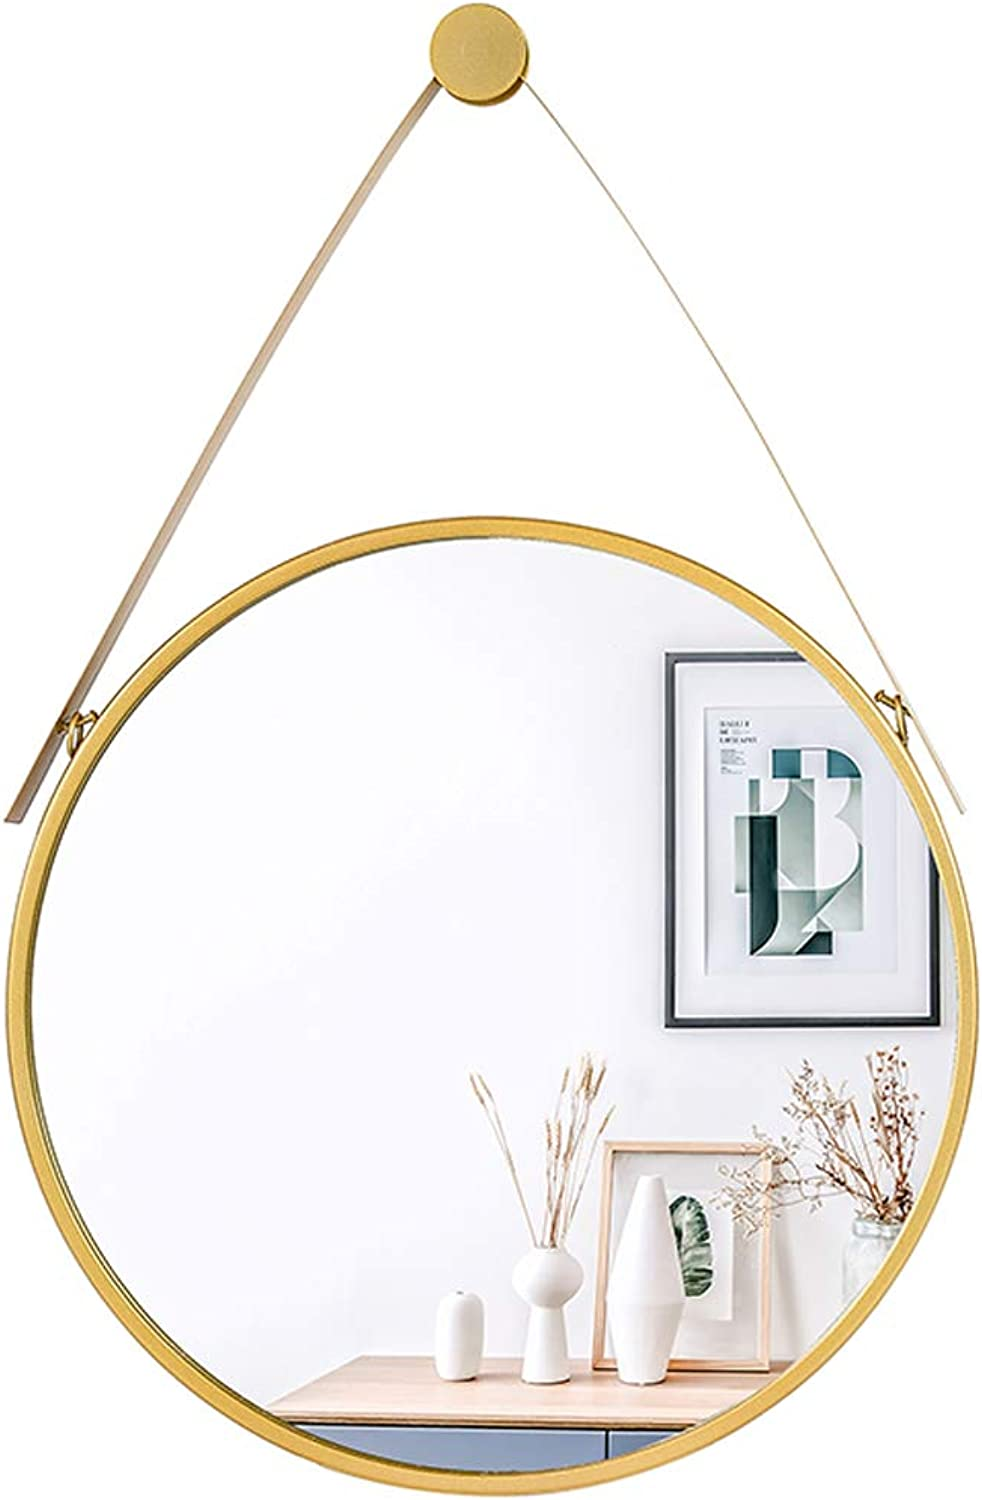 Metal Frame Wall Mirror Bathroom Shaving Mirror, Hanging Decorative Mirror with Hanging Chain (golden)